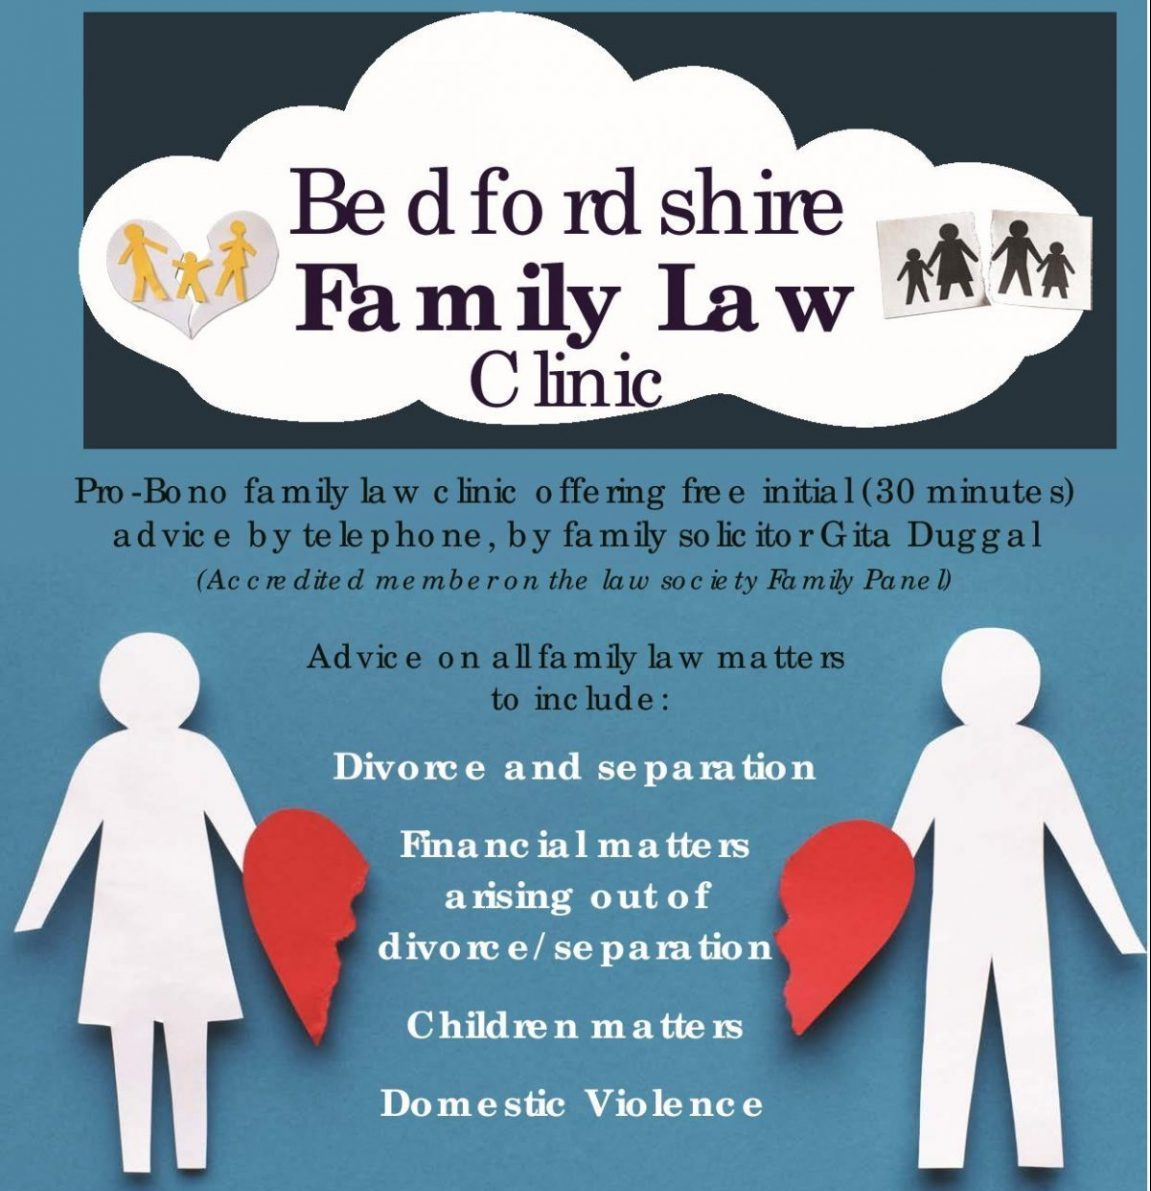 Bedfordshire Family Law Clinic